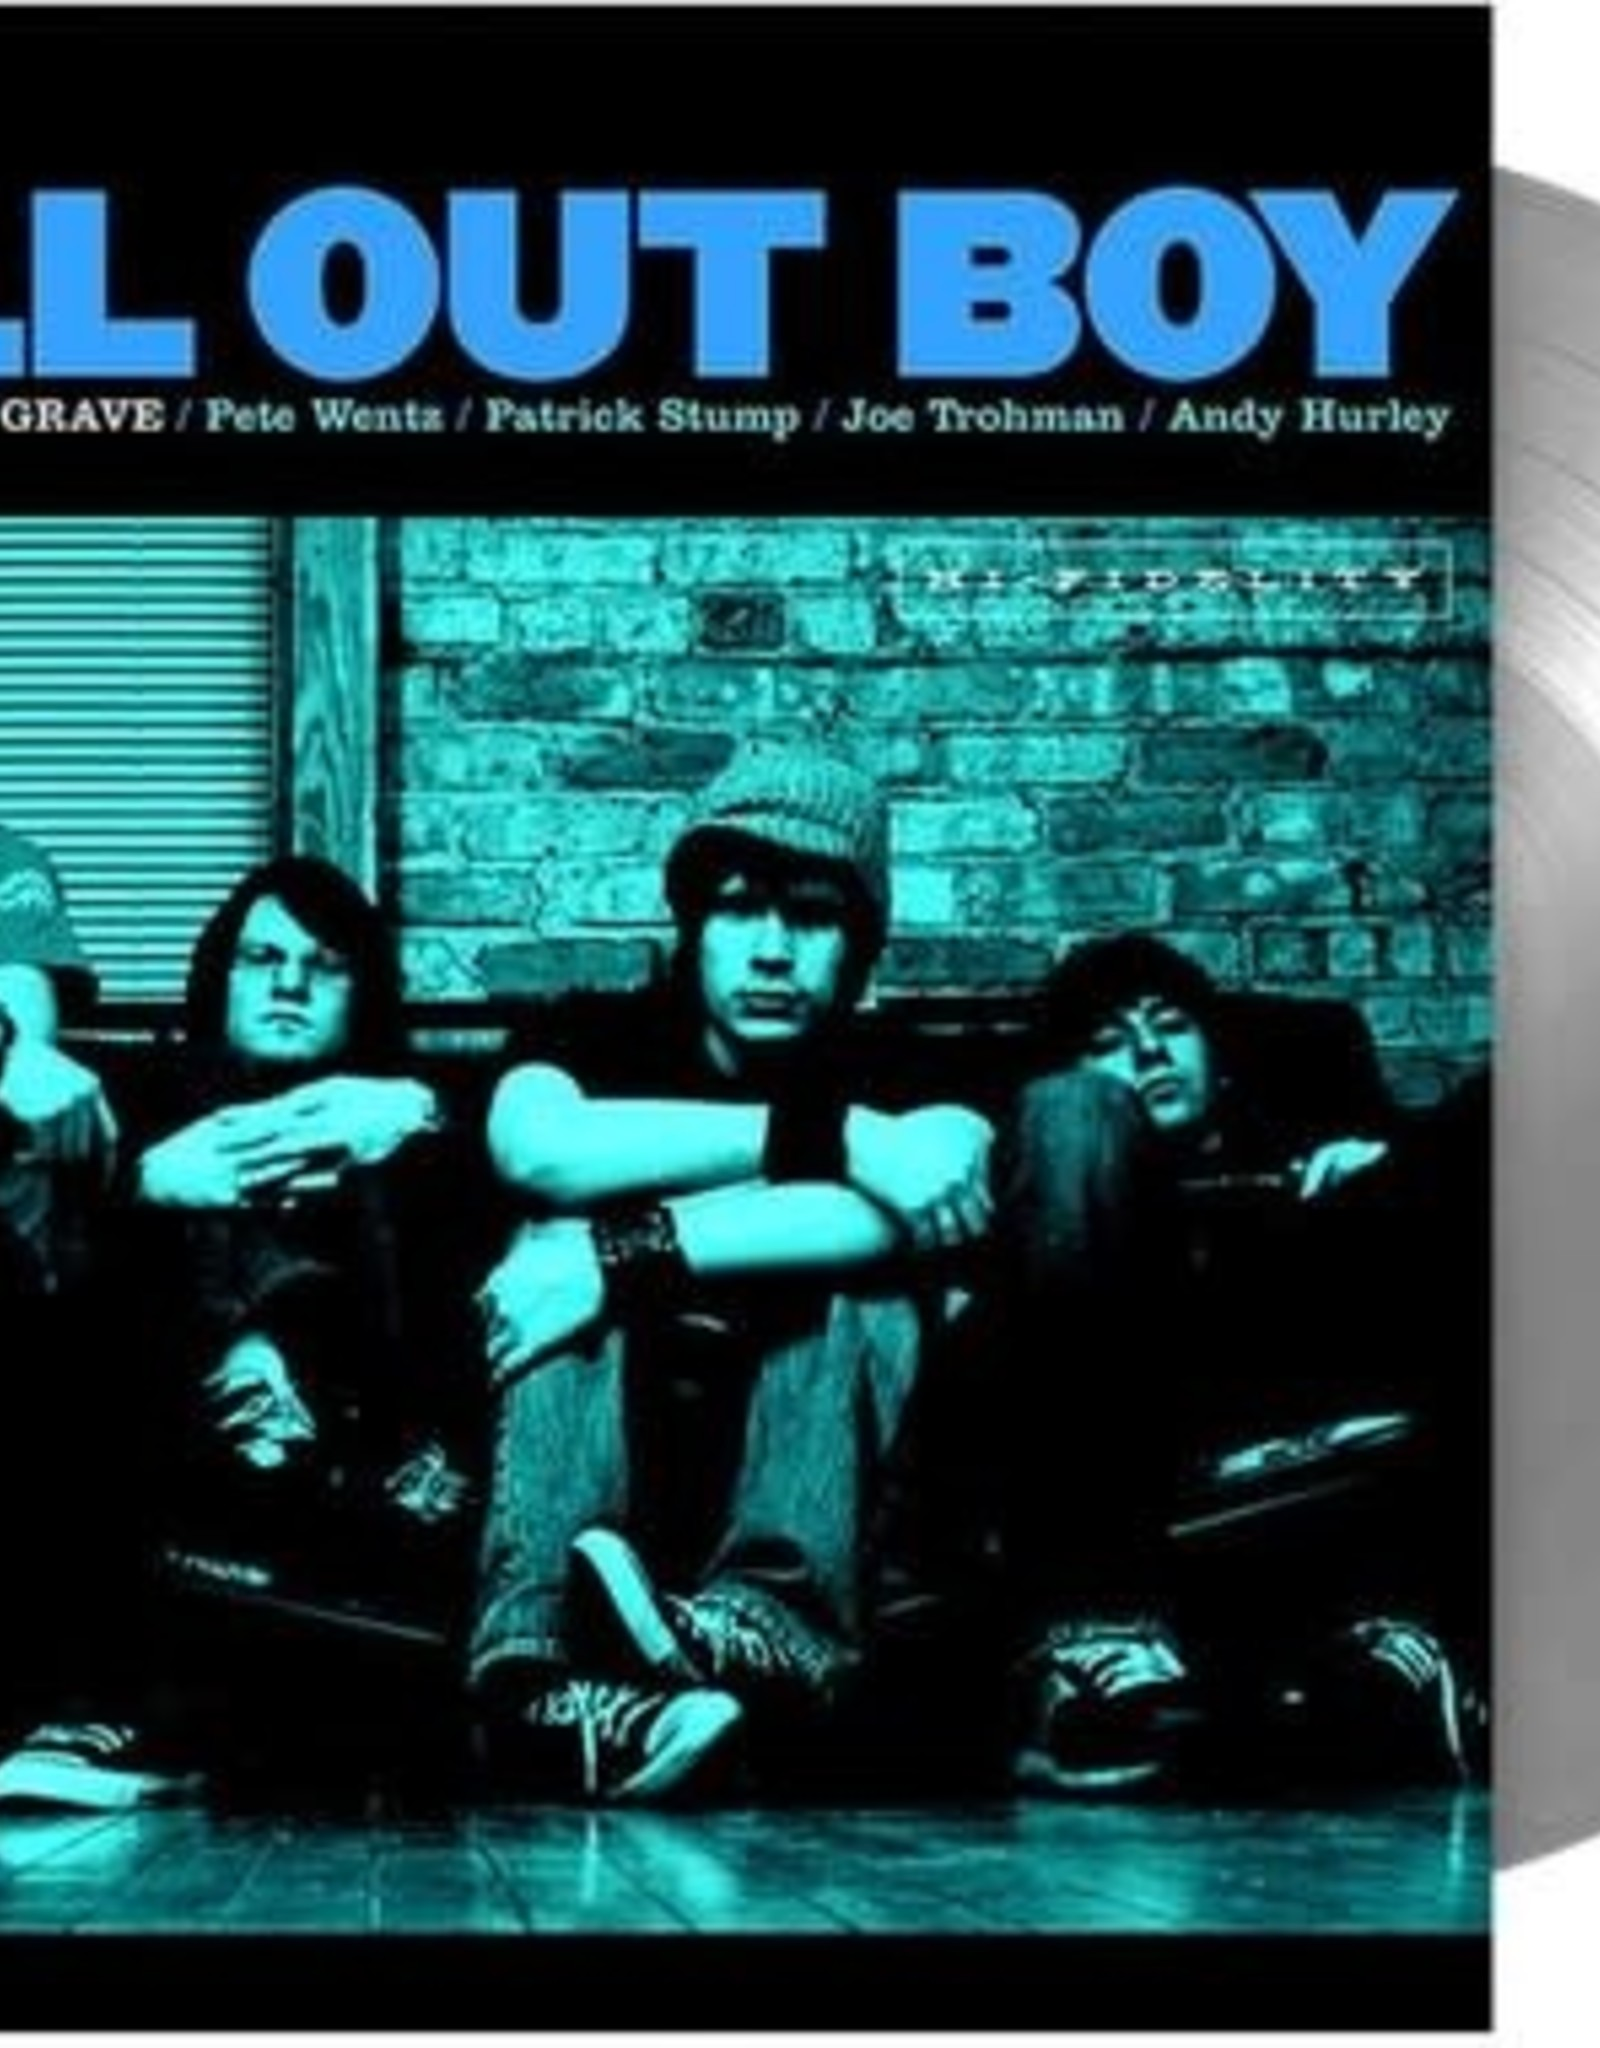 Fall Out Boy - Take This To Your Grave (FBR 25th Anniversary Edition Silver Vinyl)